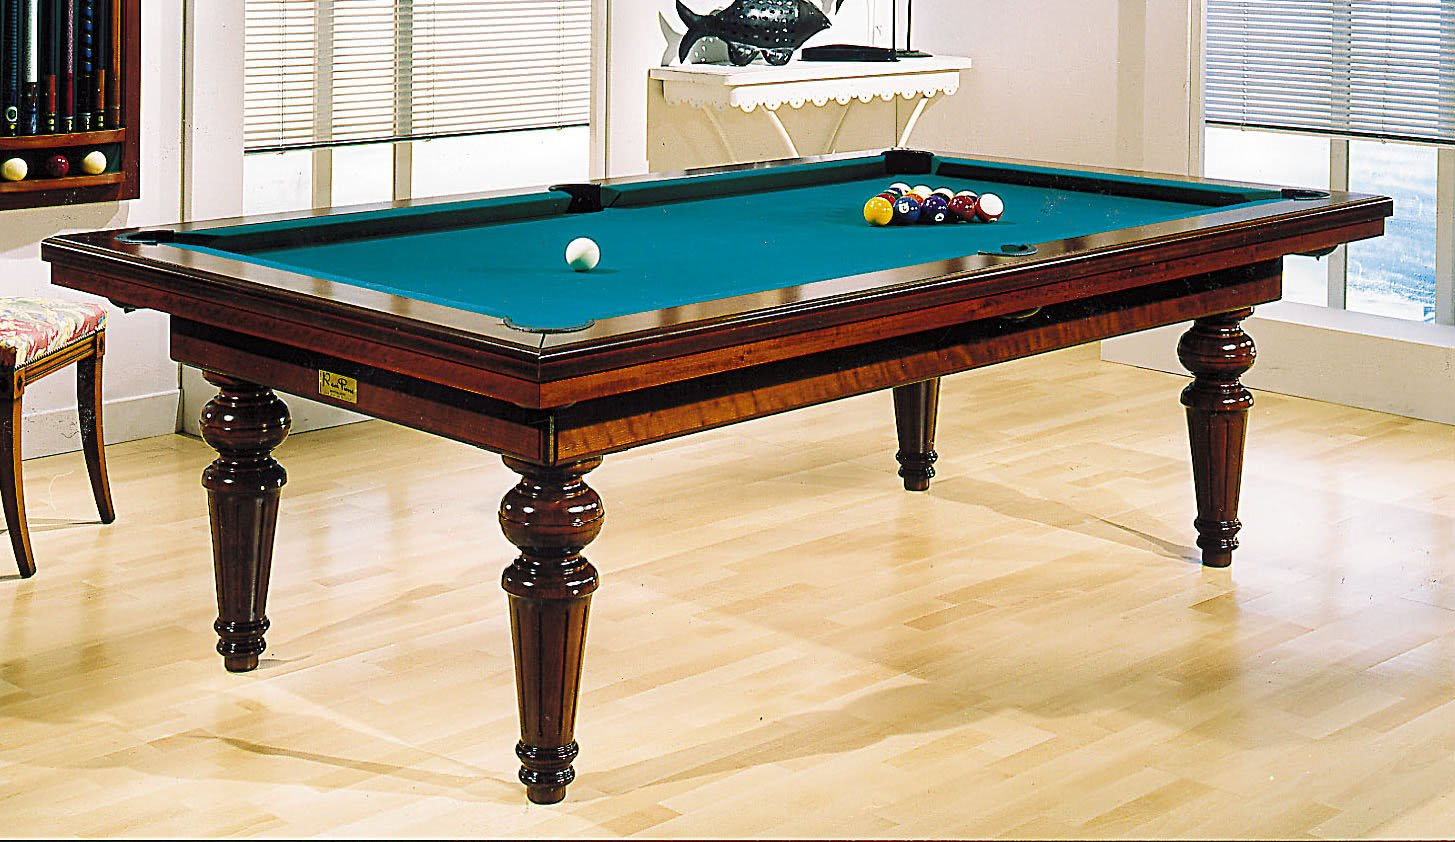 rene pierre carousel pool table 7 ft 8 ft liberty games. Black Bedroom Furniture Sets. Home Design Ideas